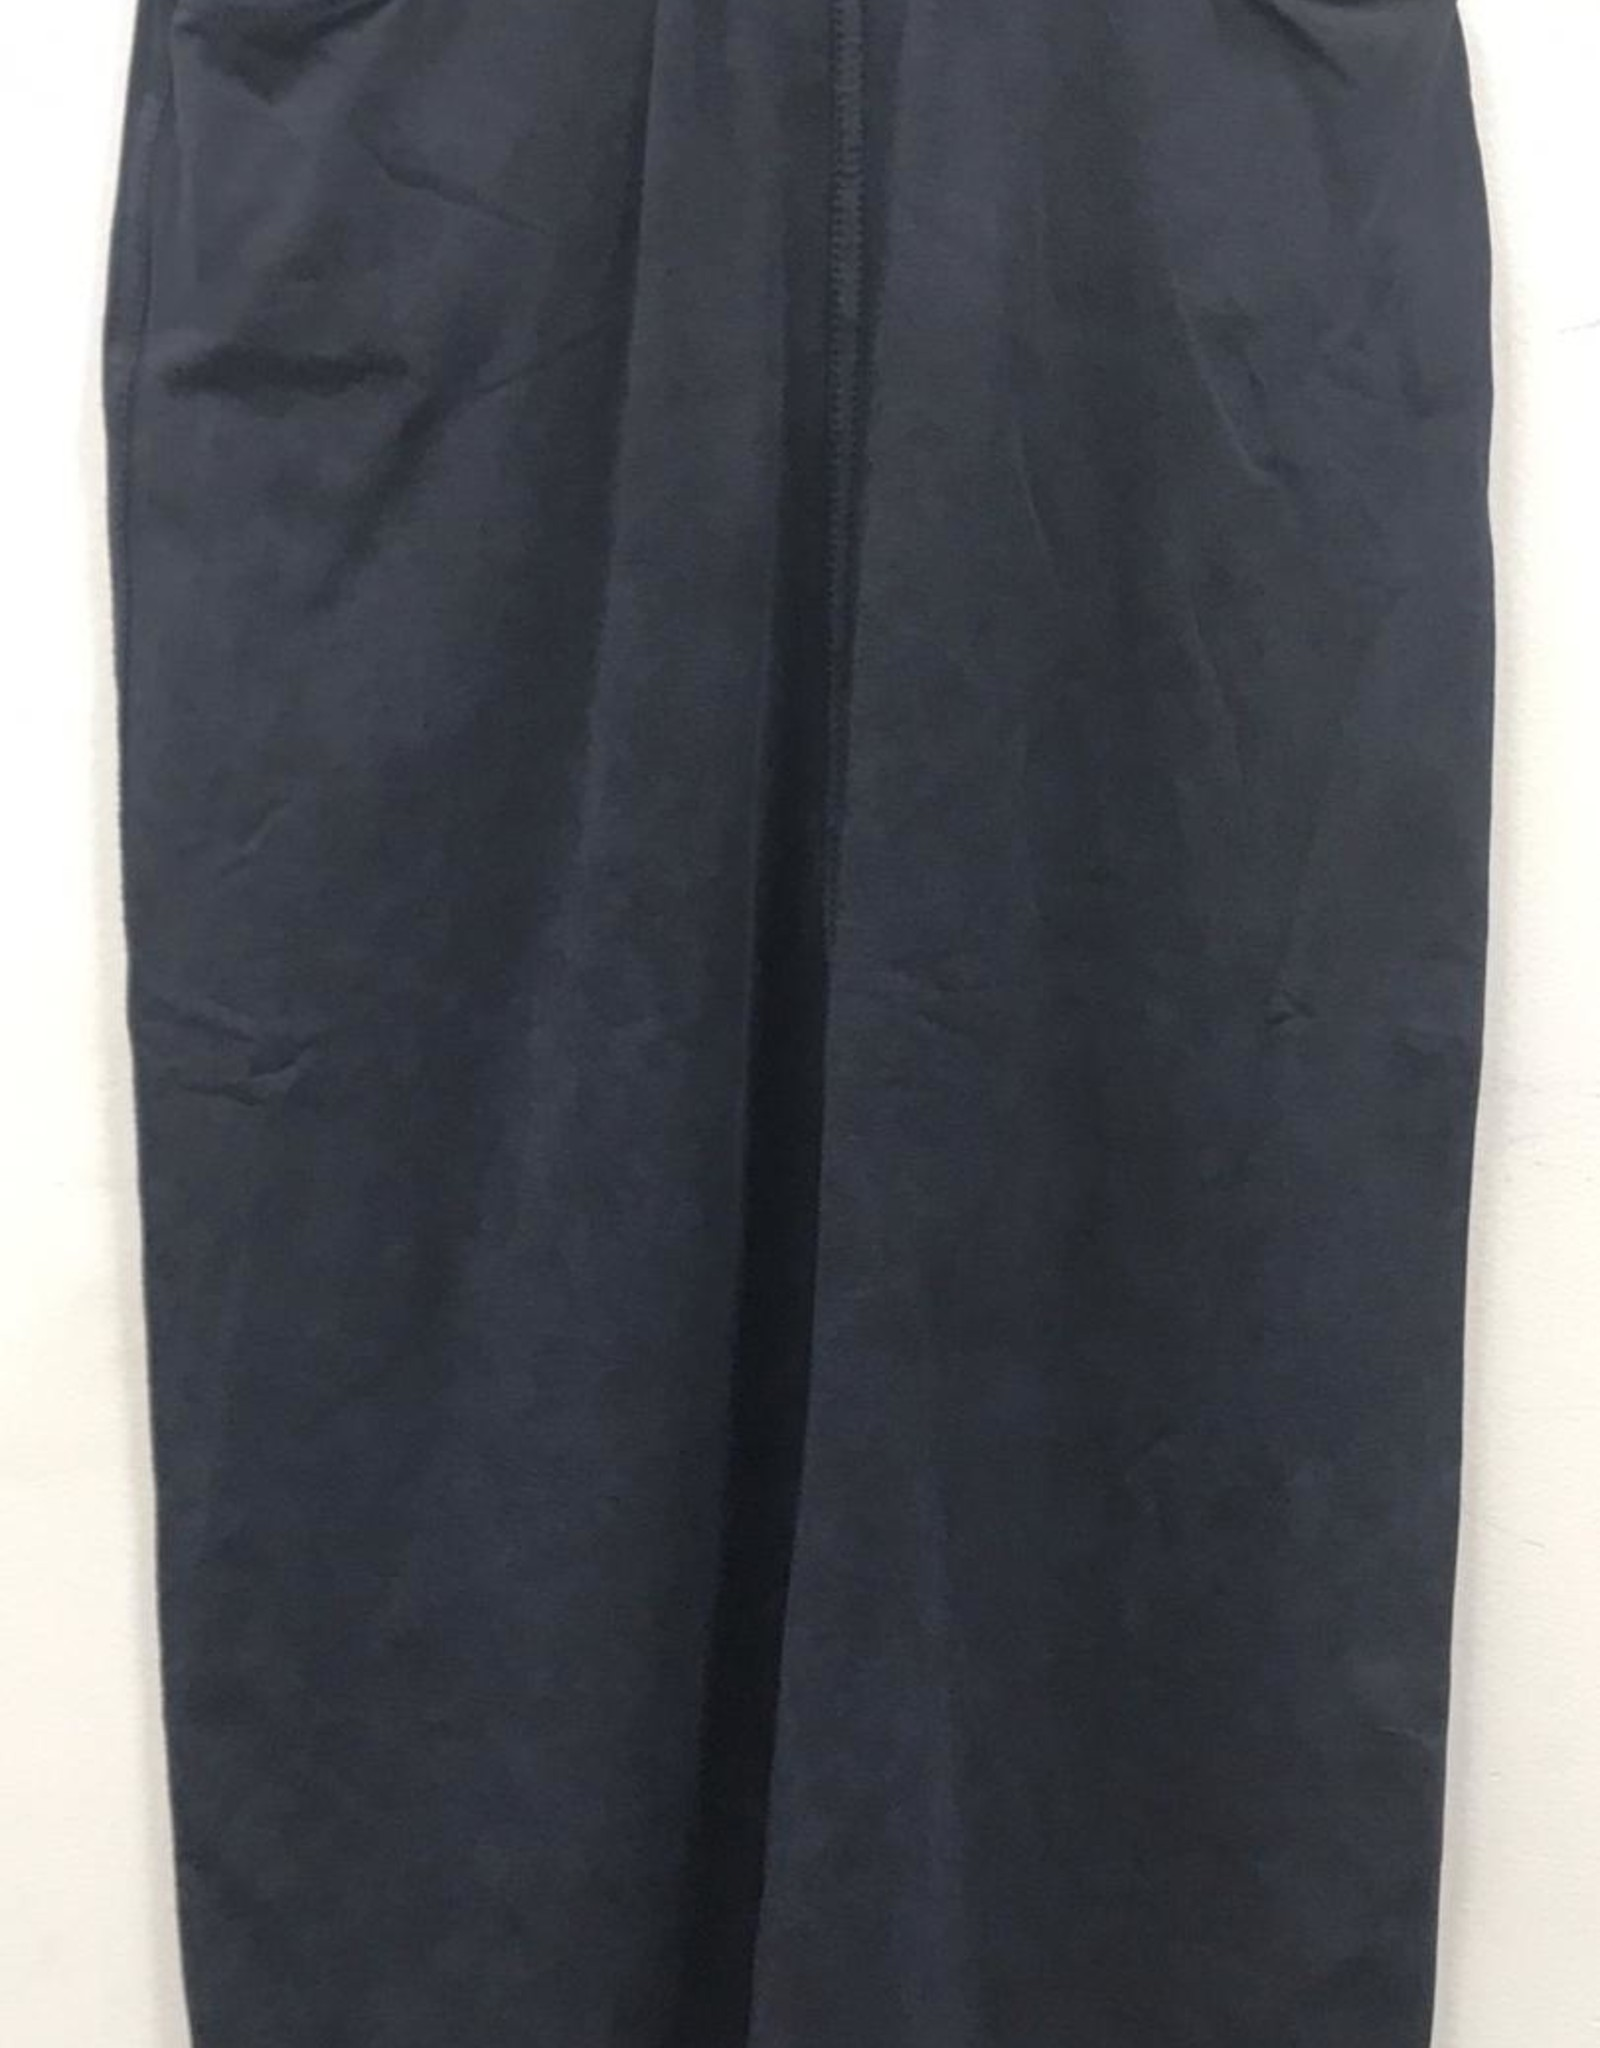 FIVE STAR Five Star Long Skirt with Pockets